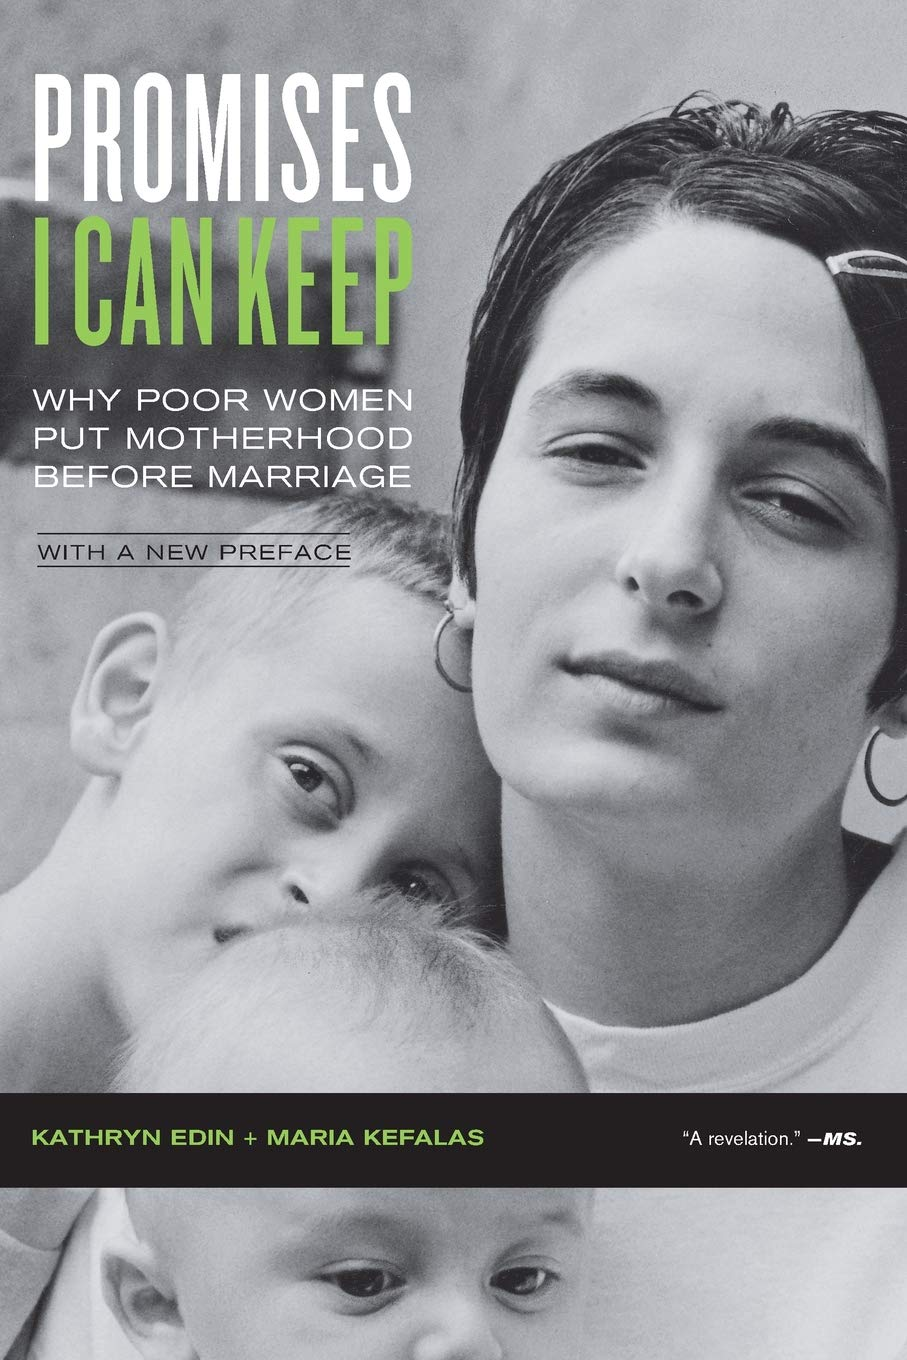 Image OfPromises I Can Keep: Why Poor Women Put Motherhood Before Marriage, With A New Preface